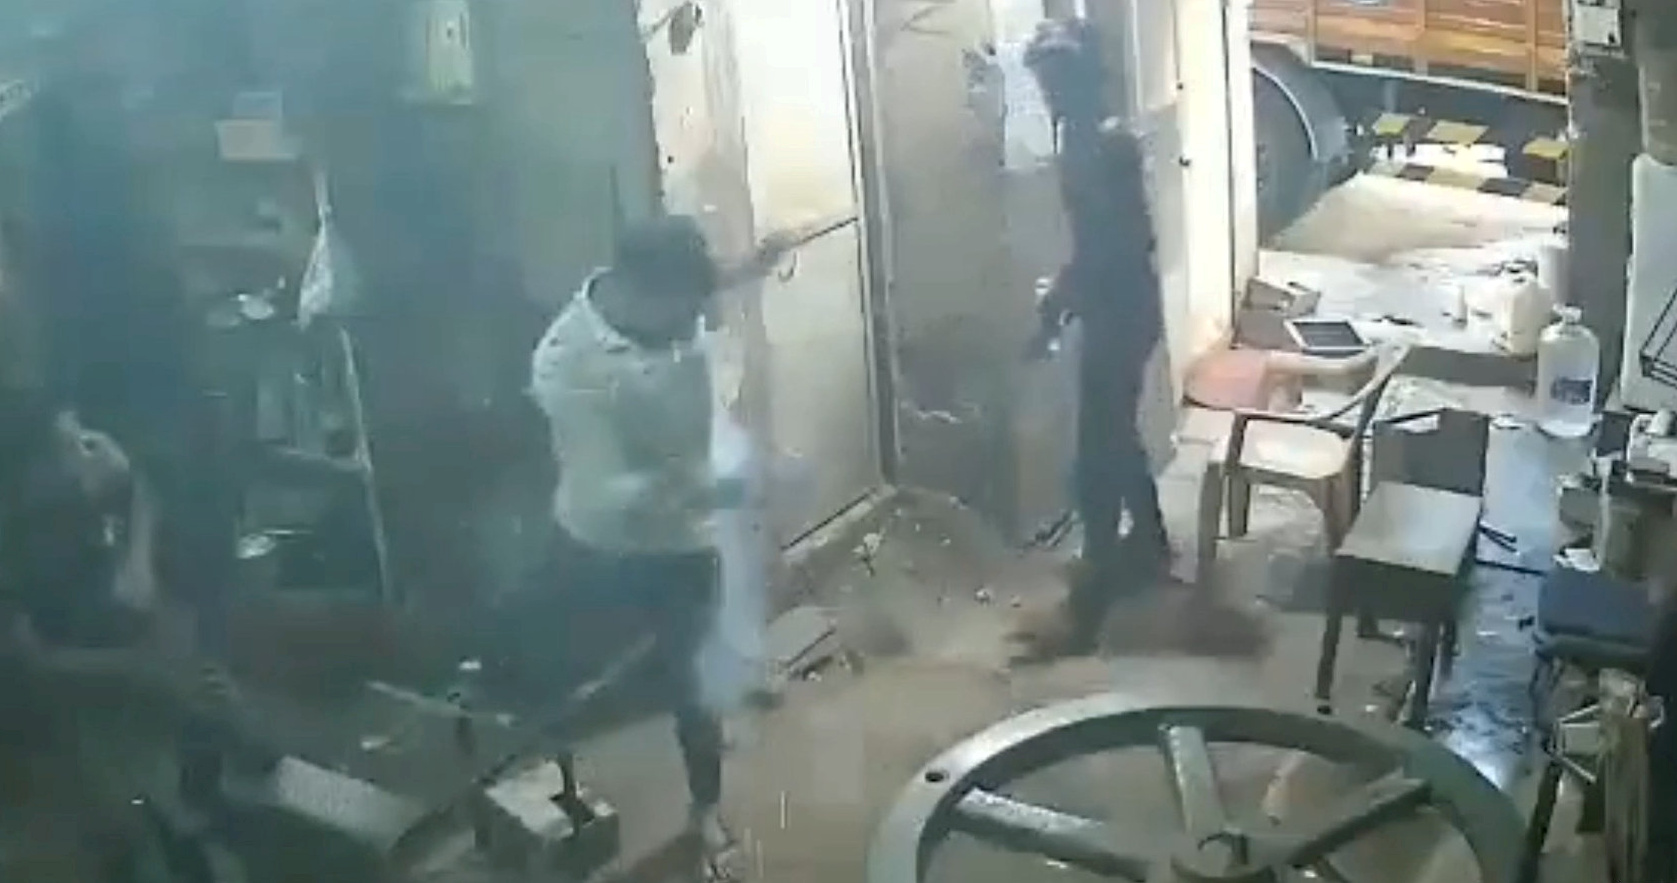 Man's smartphone explodes in pocket. Credit: SWNS